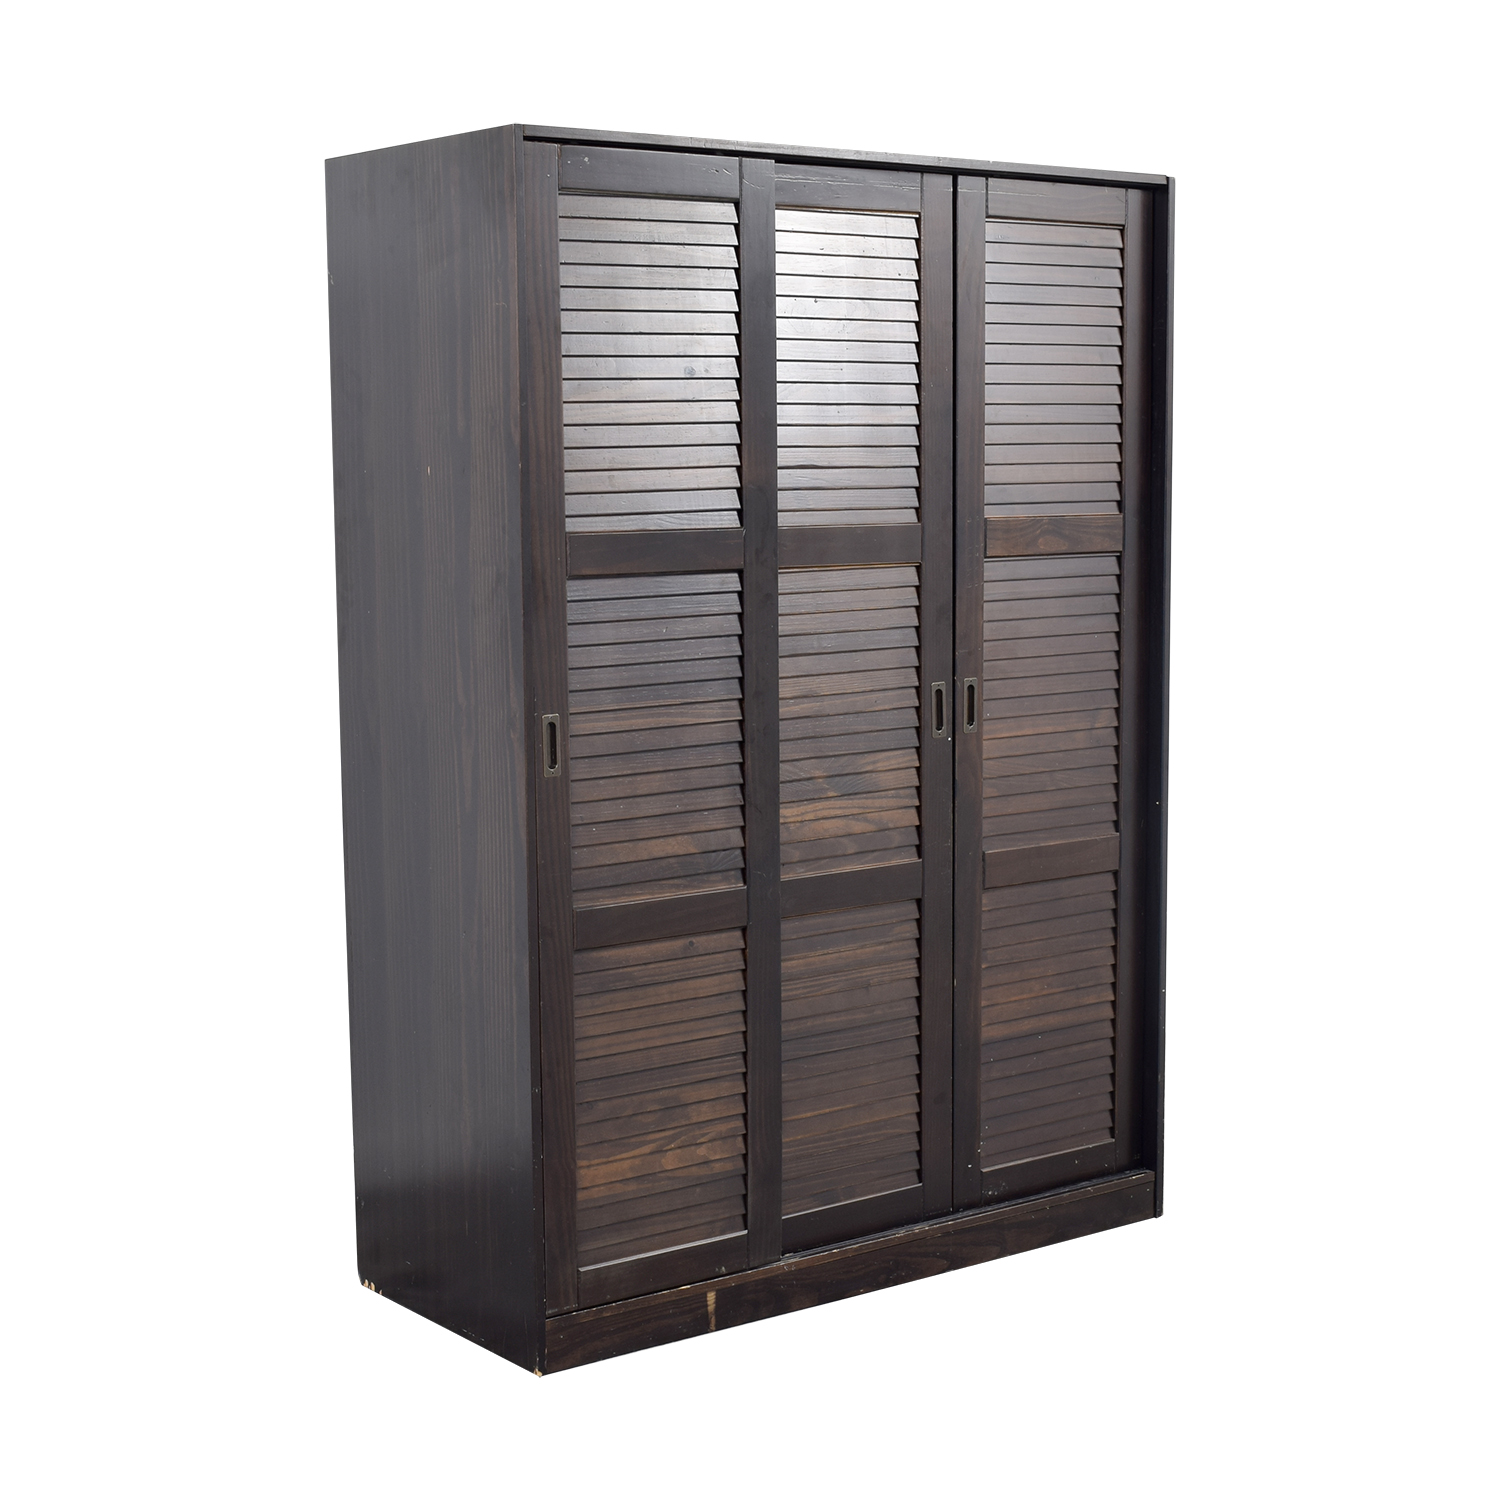 buy  Brown Wardrobe with Hanging and Shelf Space online